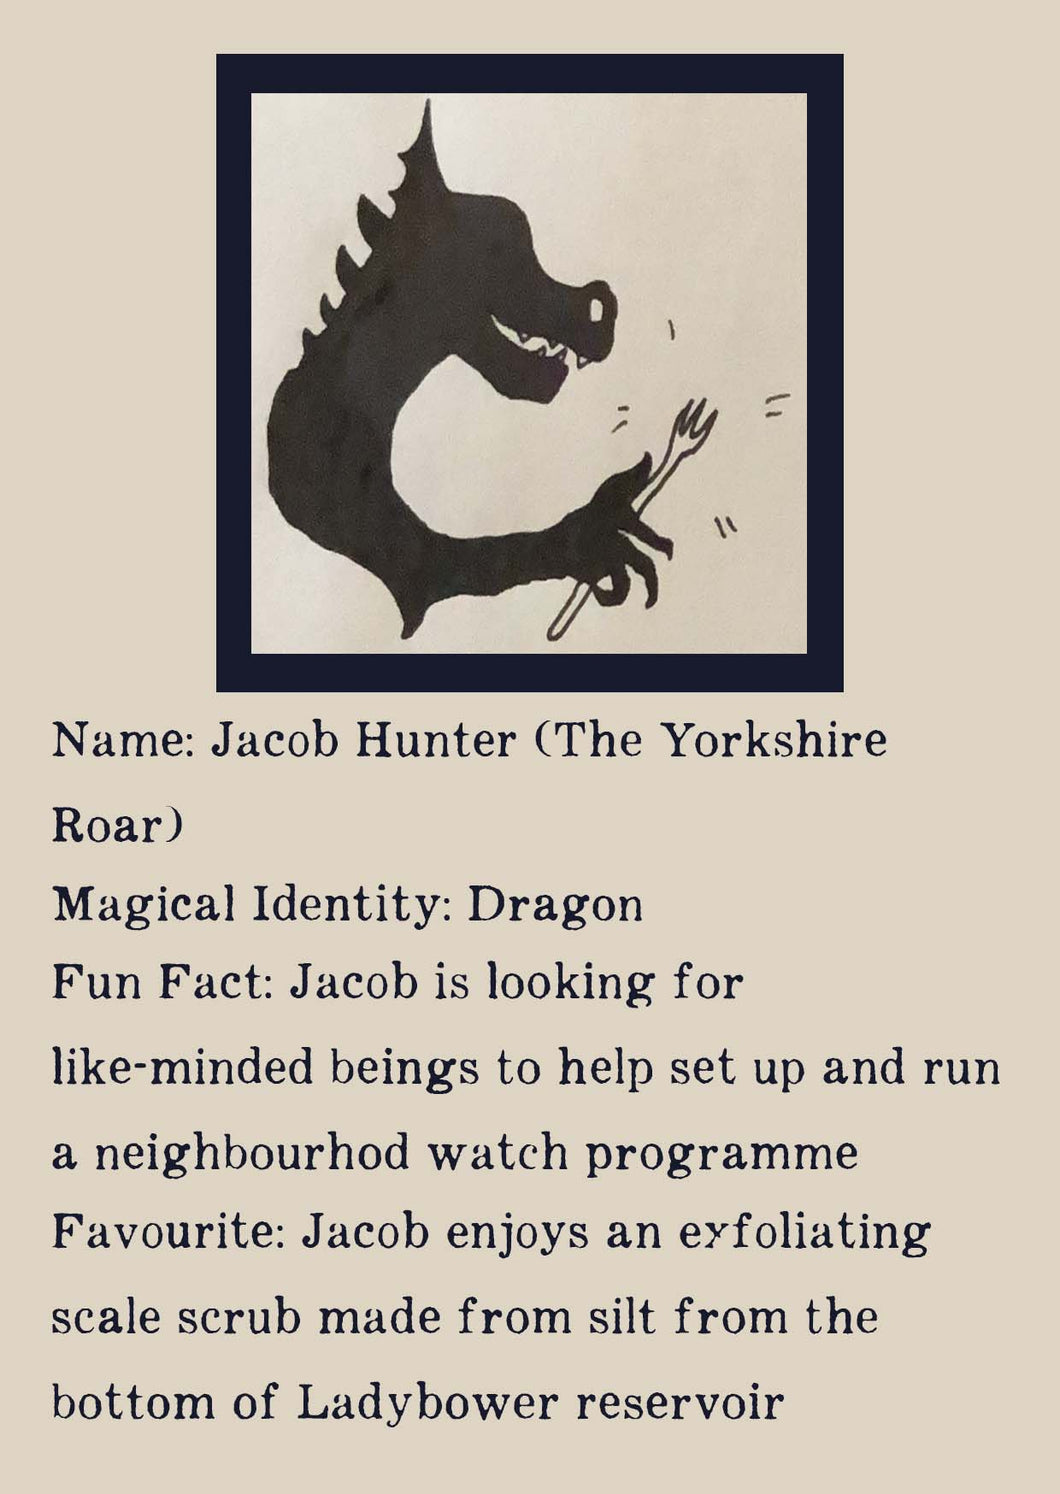 Character bio for Jacob Hunter (The Yorkshire Roar). Image shows the silhouette of a dragon holding a fork. Bio reads as follows -  Magical Identity: Dragon. Fun Fact: Jacob is looking for like-minded beings to help set up and run a neighbourhood watch programme. Favourite: Jacob enjoys an exfoliating scale scrub made from silt from the bottom of Ladybower reservoir.